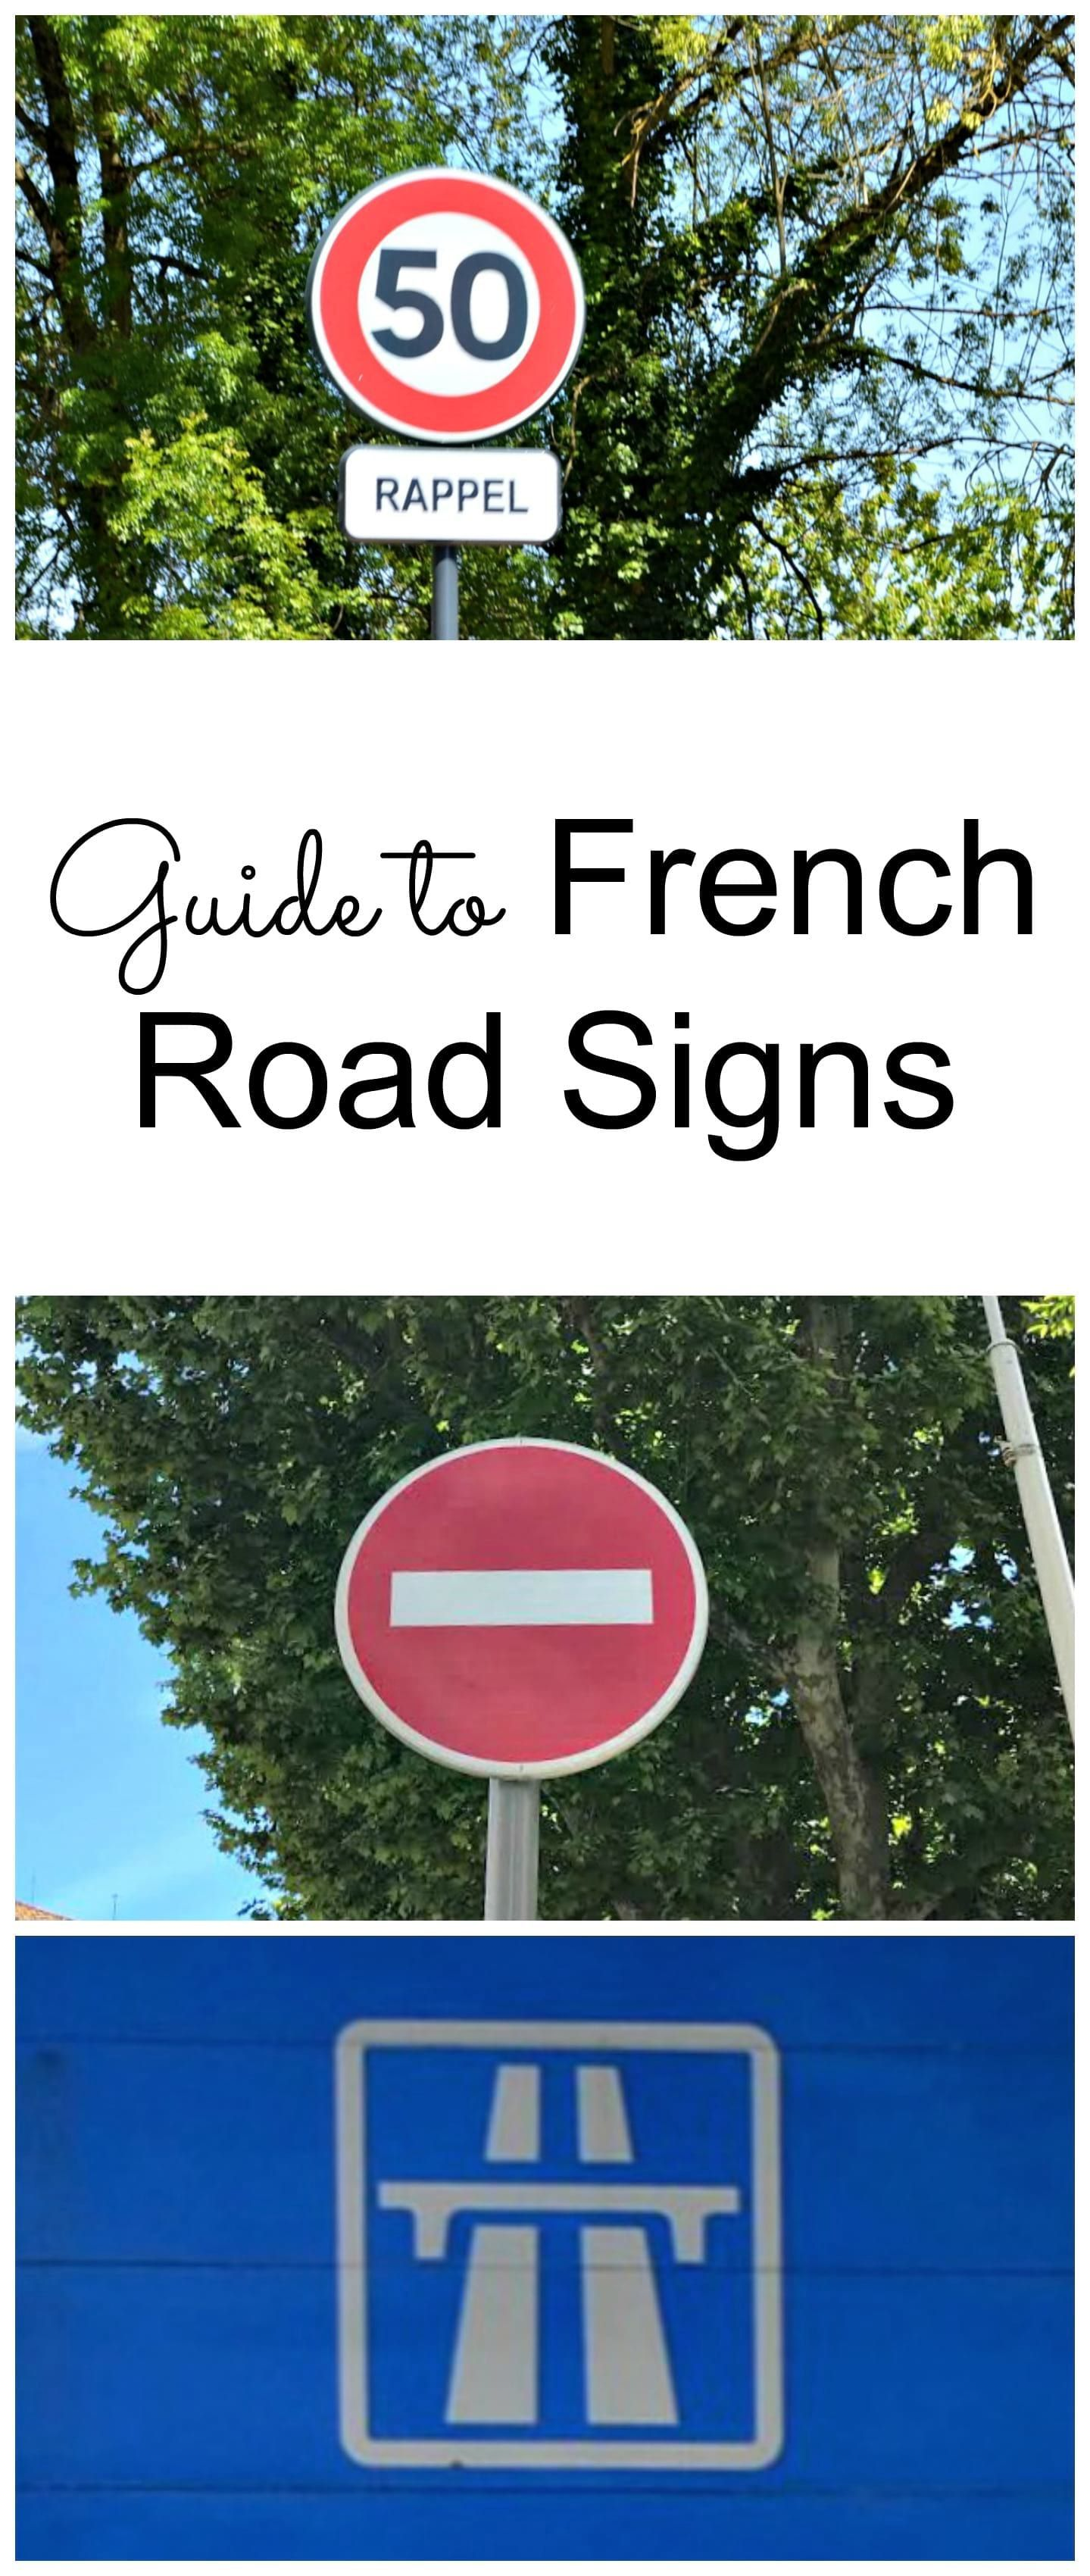 Pictures from the road easy guide to understanding french road french road signs are pretty straightforward and use a lot of universal symbols however buycottarizona Image collections